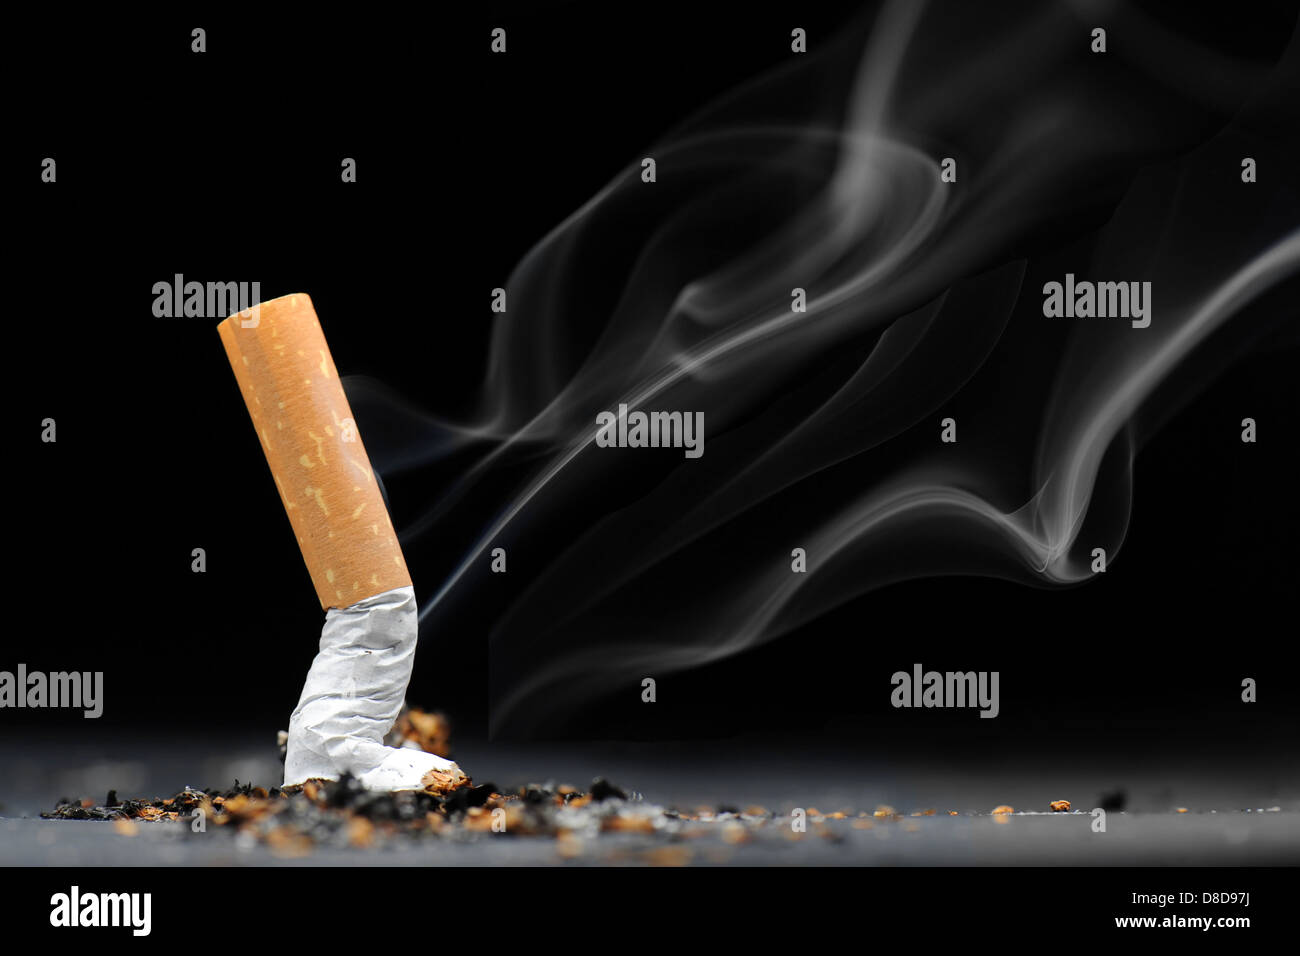 A burning cigarette with smoke against a black background. - Stock Image